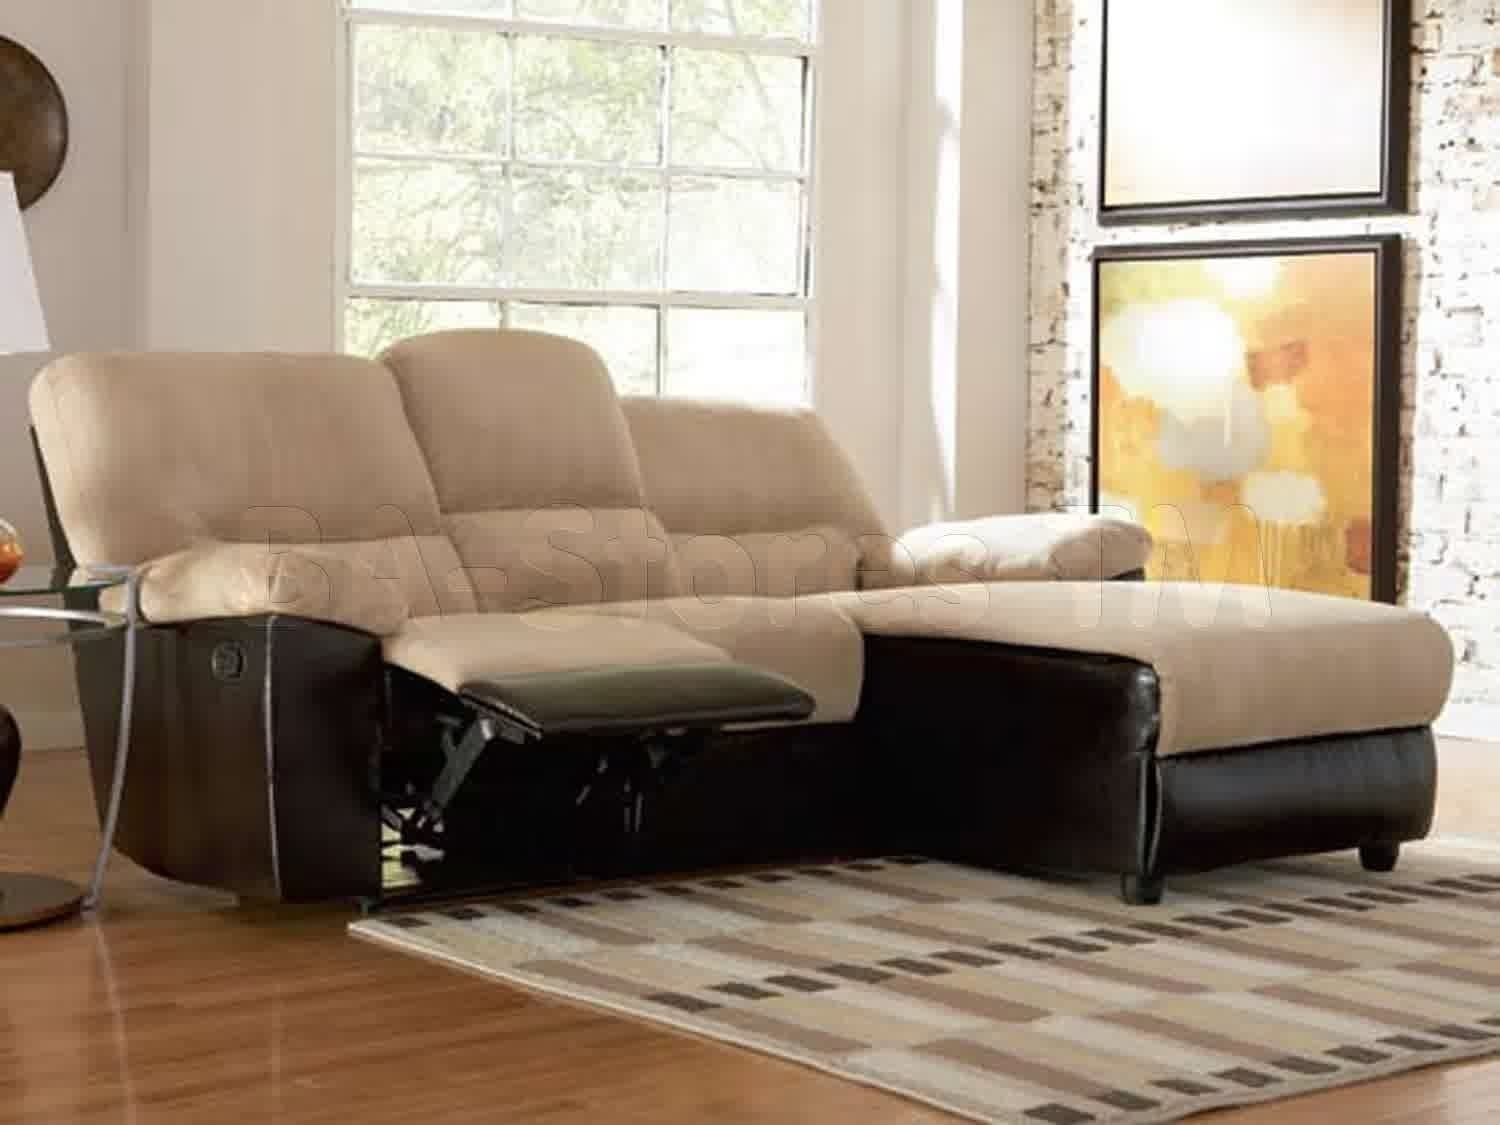 10 top lee industries sectional sofas sofa ideas. Black Bedroom Furniture Sets. Home Design Ideas